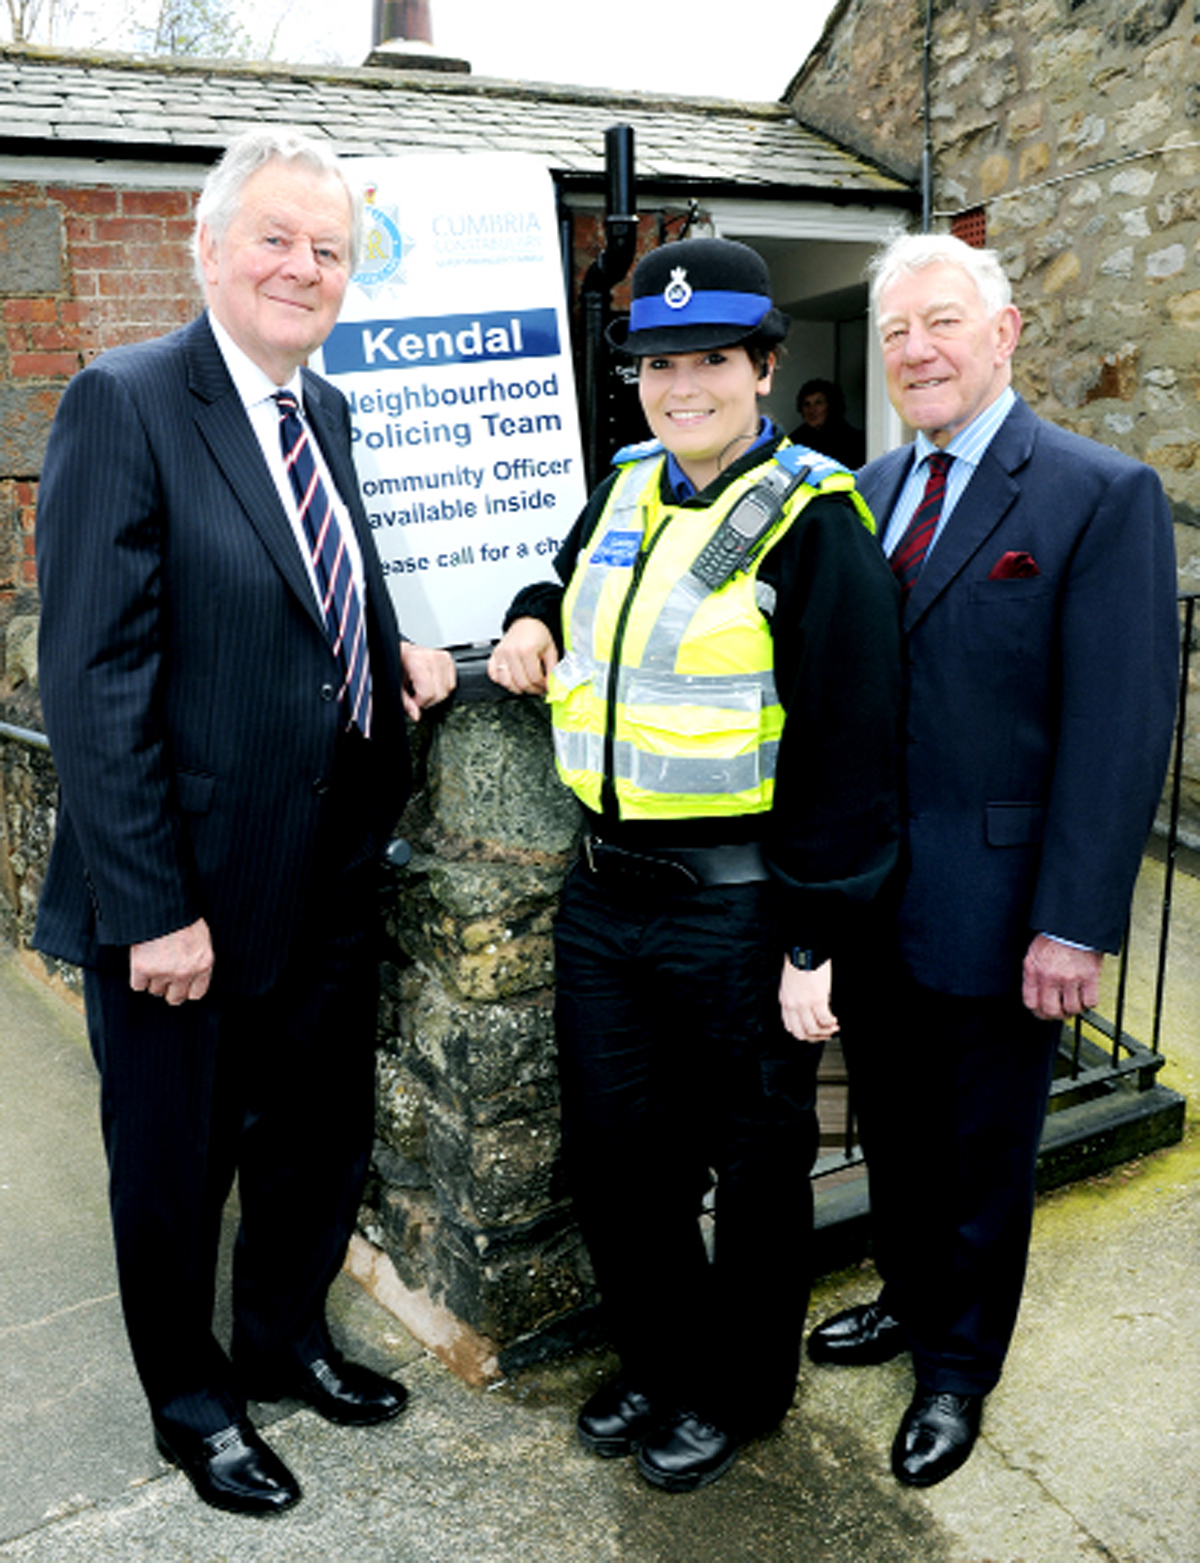 At the opening, from left, Richard Rhodes, Cumbria Police and Crime Commissioner, PCSO Danielle Ayers, and Tony Reed Screen, chair of the trustees of the building